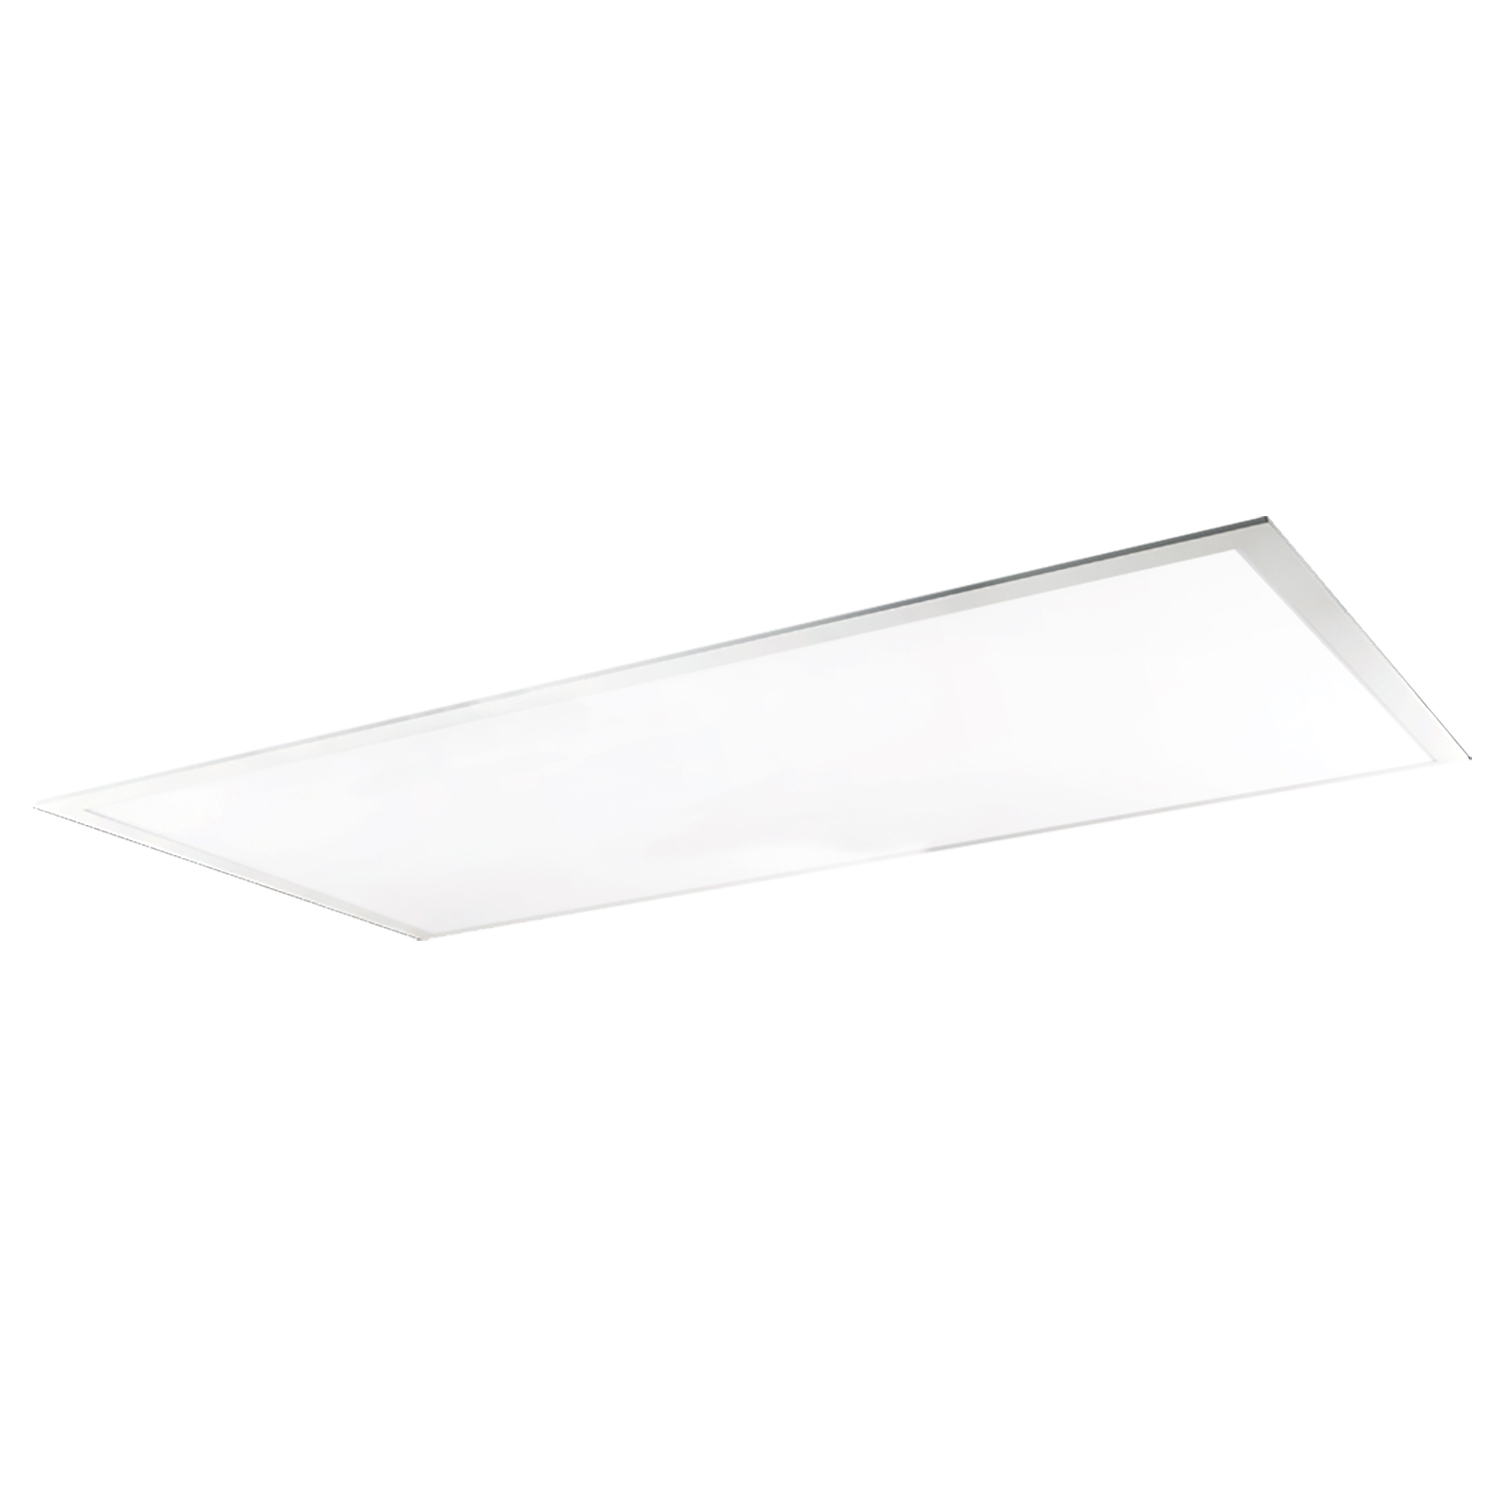 14EPL40/840/LED 81983 ProLED EDGE-LIT FLAT PANEL 1X4 40W 4000K 0-10V DIMMABLE